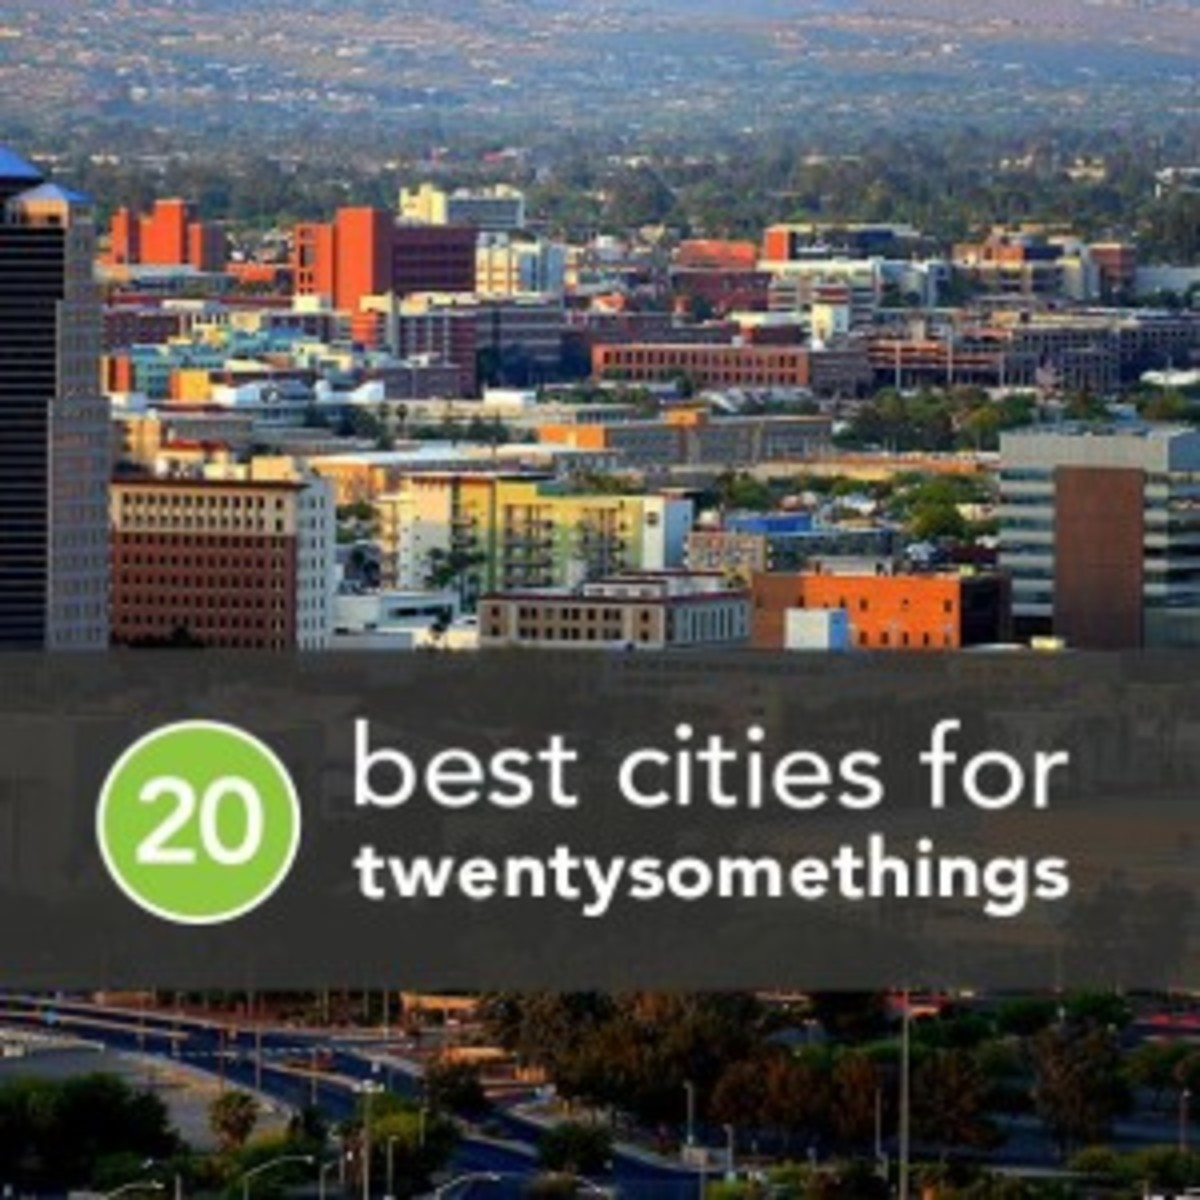 The 20 Best Cities for Twentysomethings